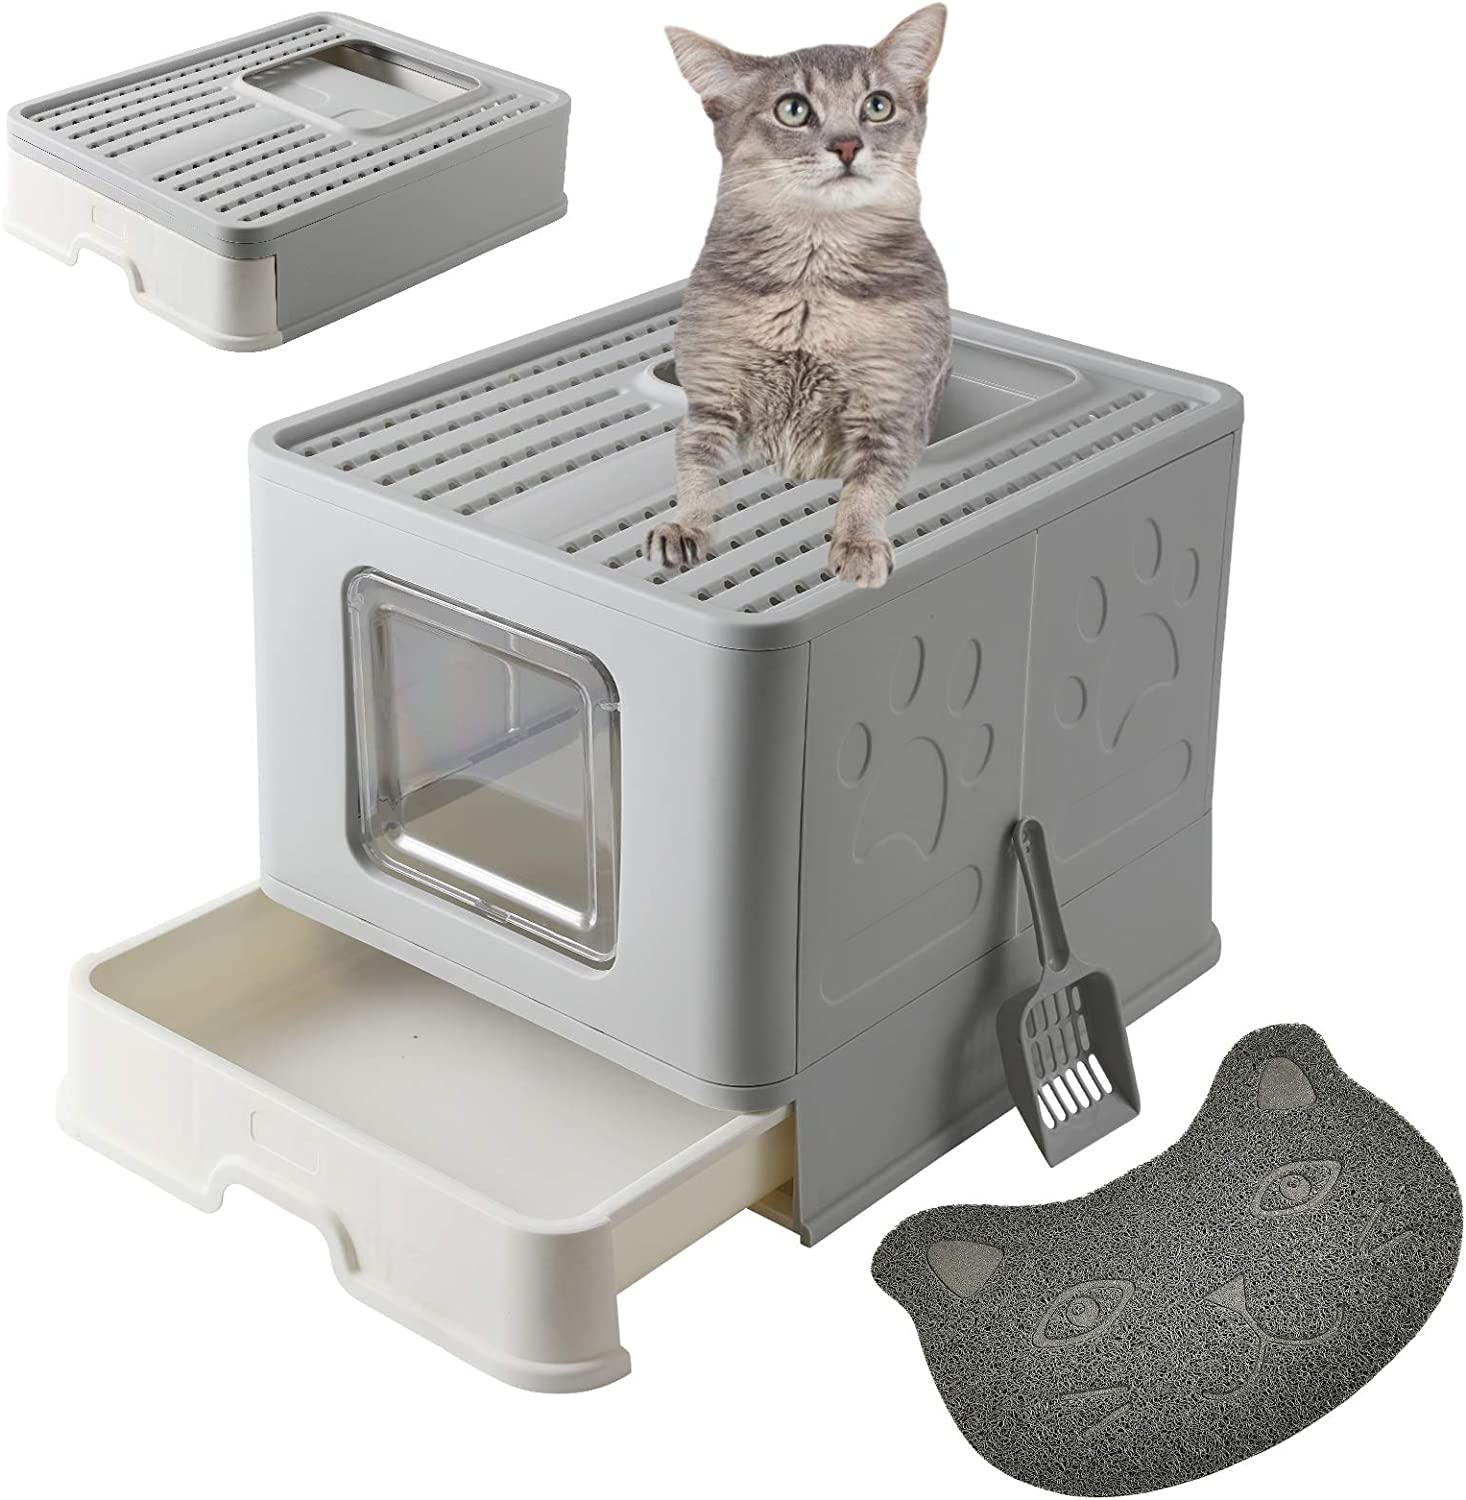 MINIDIO OFFicial shop Foldable Cat Direct store Litter Box Reduces Li with Scoop